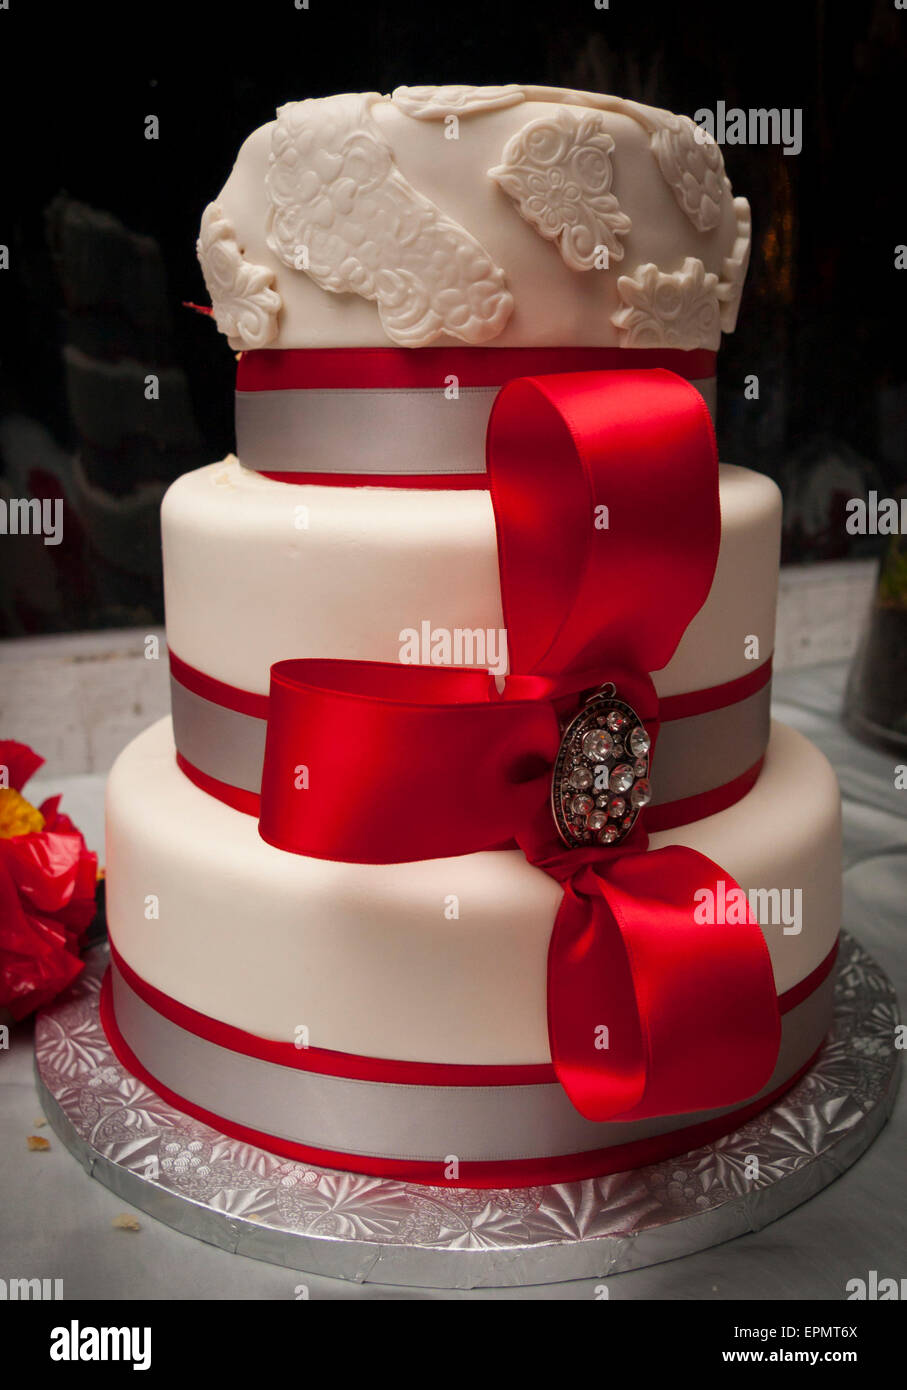 Red and white fondant wedding cake with a big red bow stock photo red and white fondant wedding cake with a big red bow junglespirit Gallery